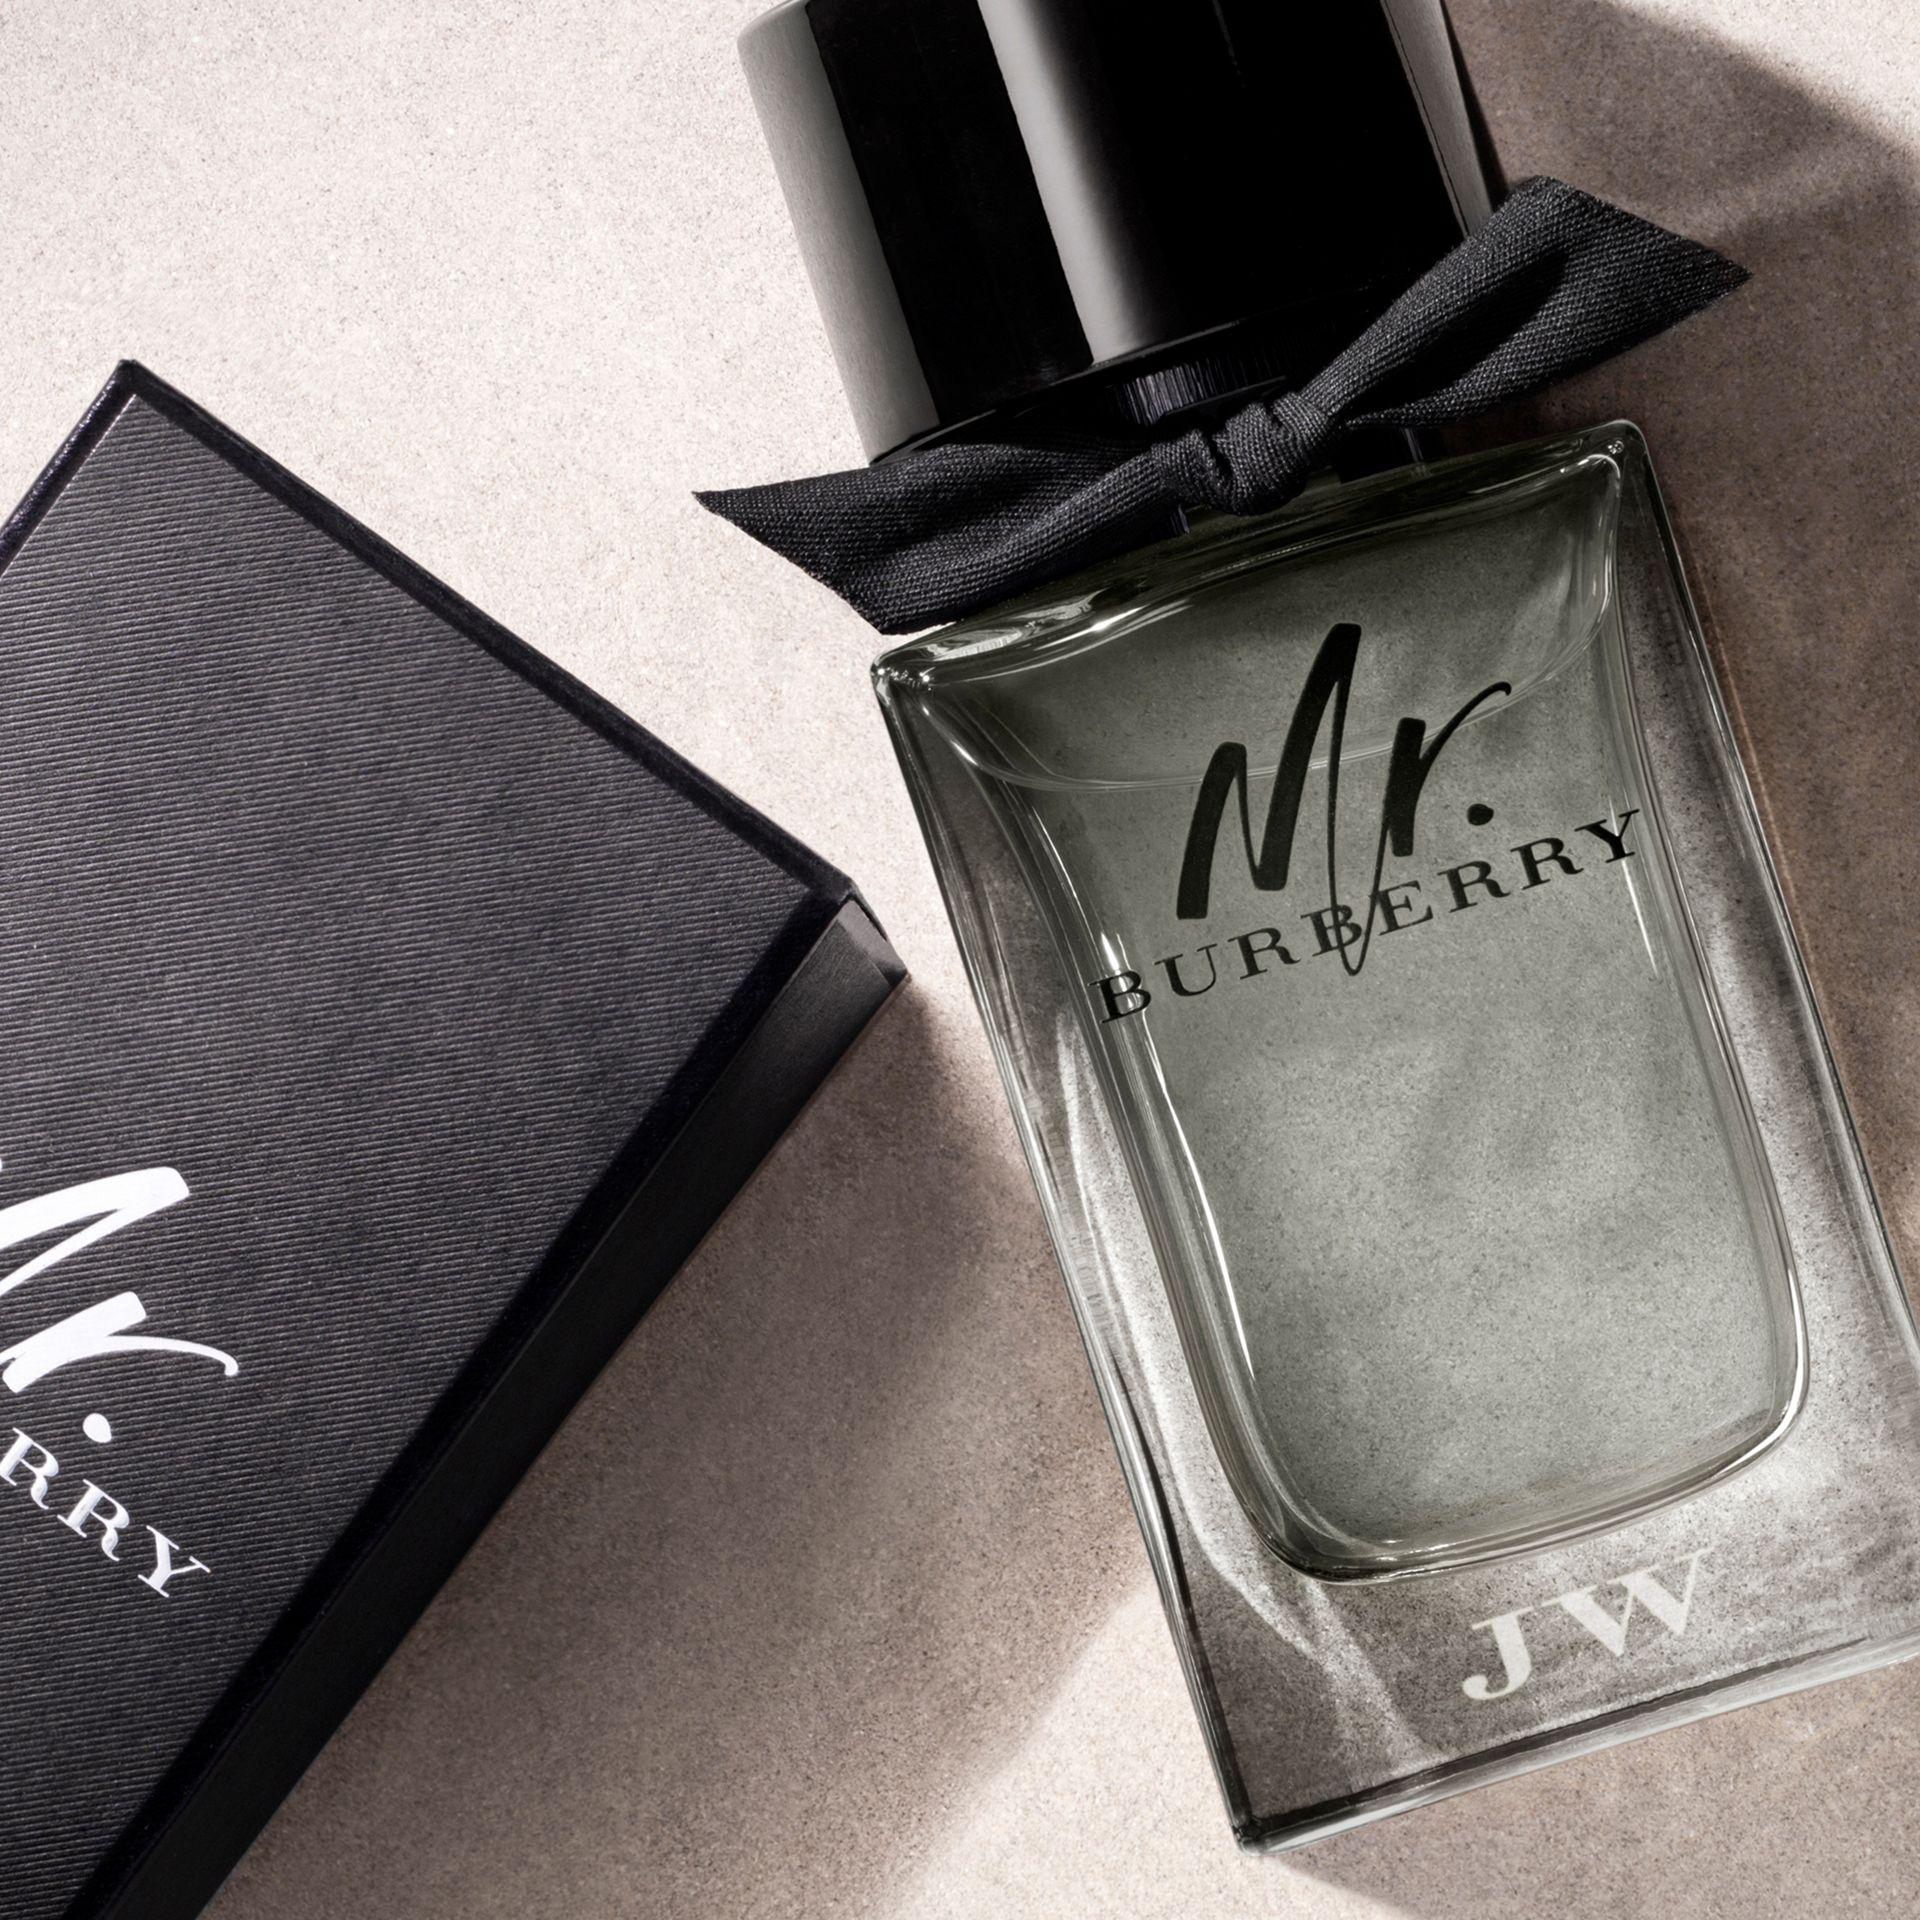 Mr. Burberry Eau de Toilette 1000ml | Burberry - gallery image 4